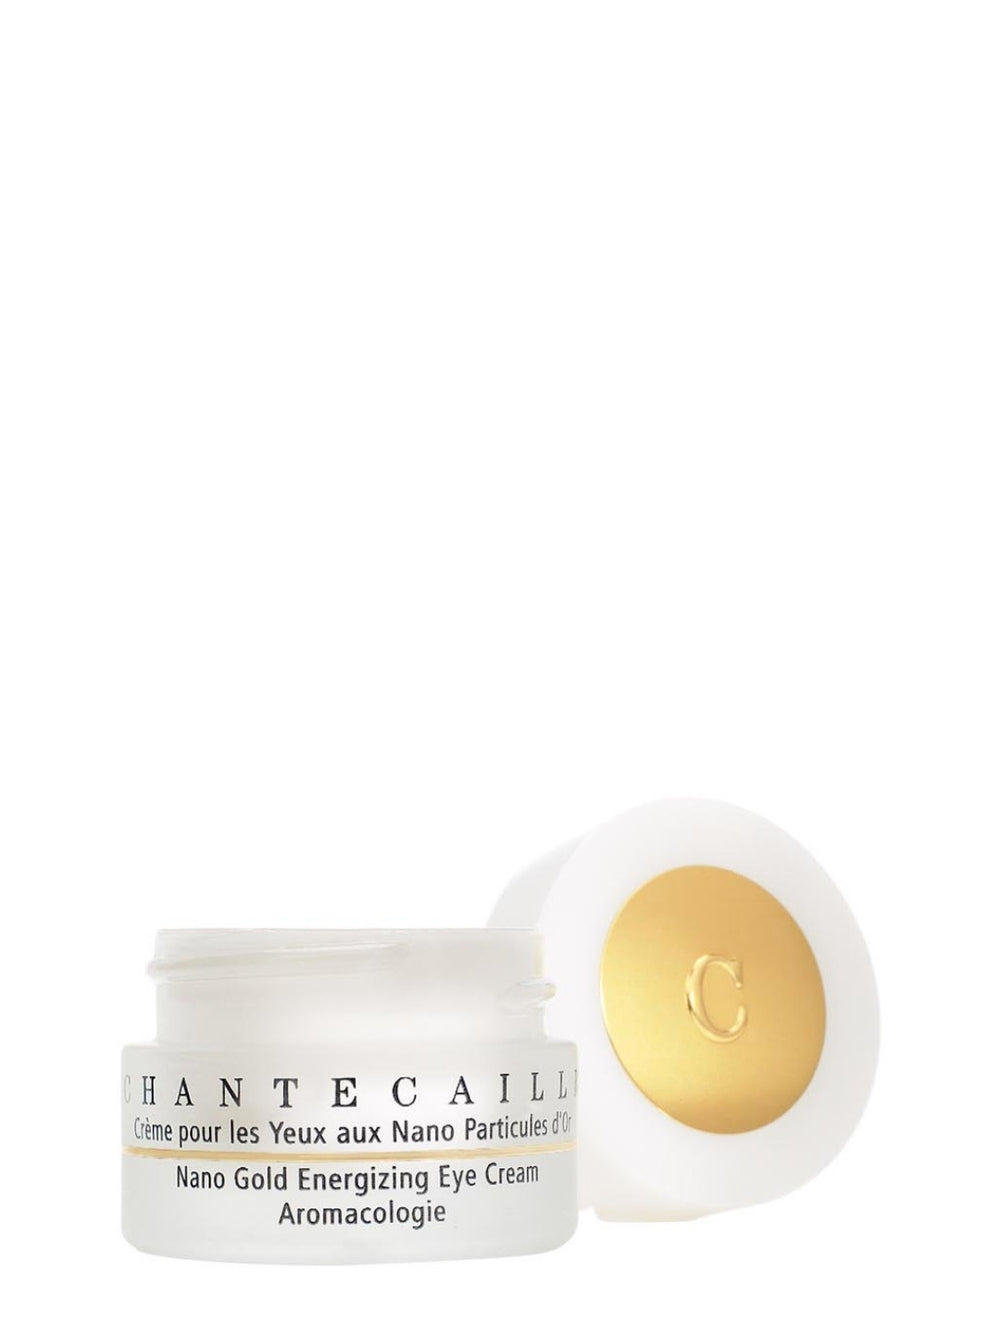 chantecaille-nano-gold-energising-eye-cream